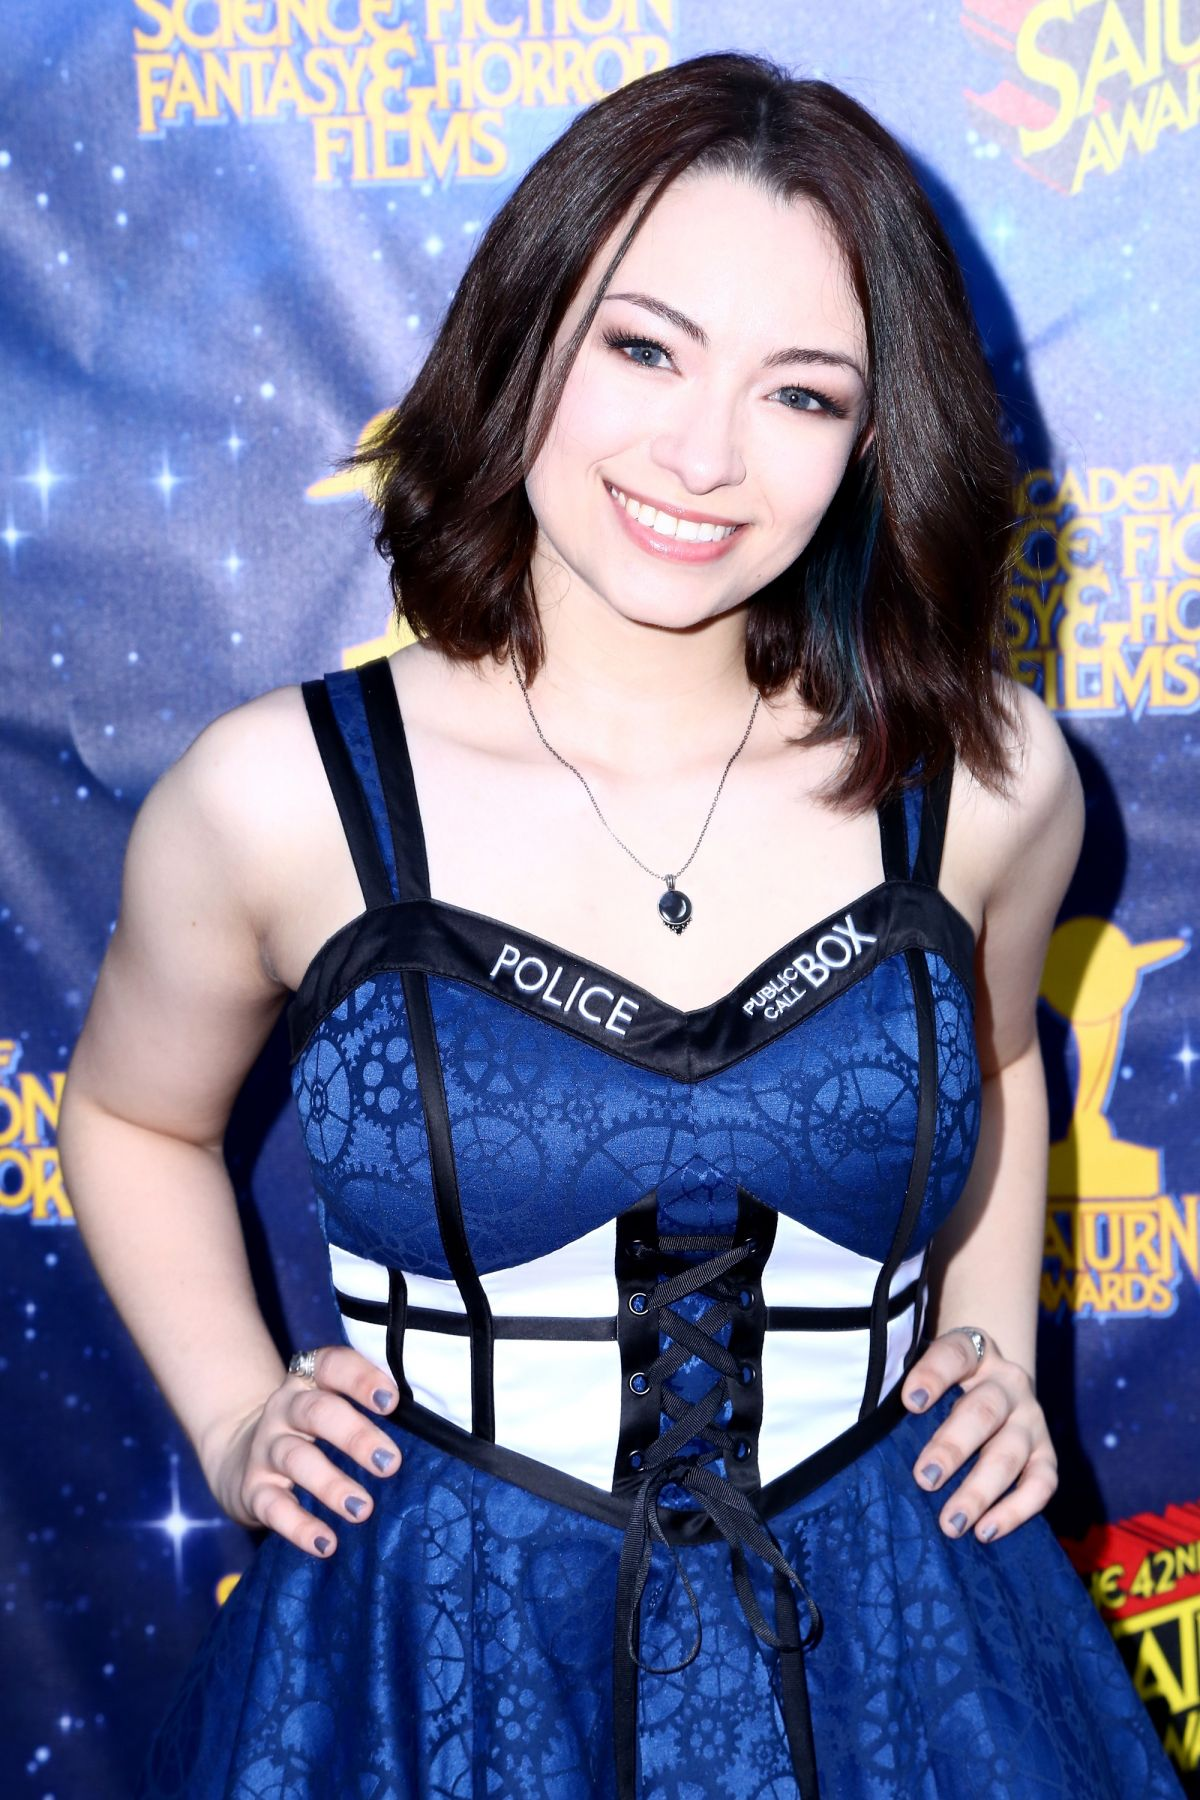 JODELLE FERLAND at 2016 Saturn Awards in Burbank 06/22/2016